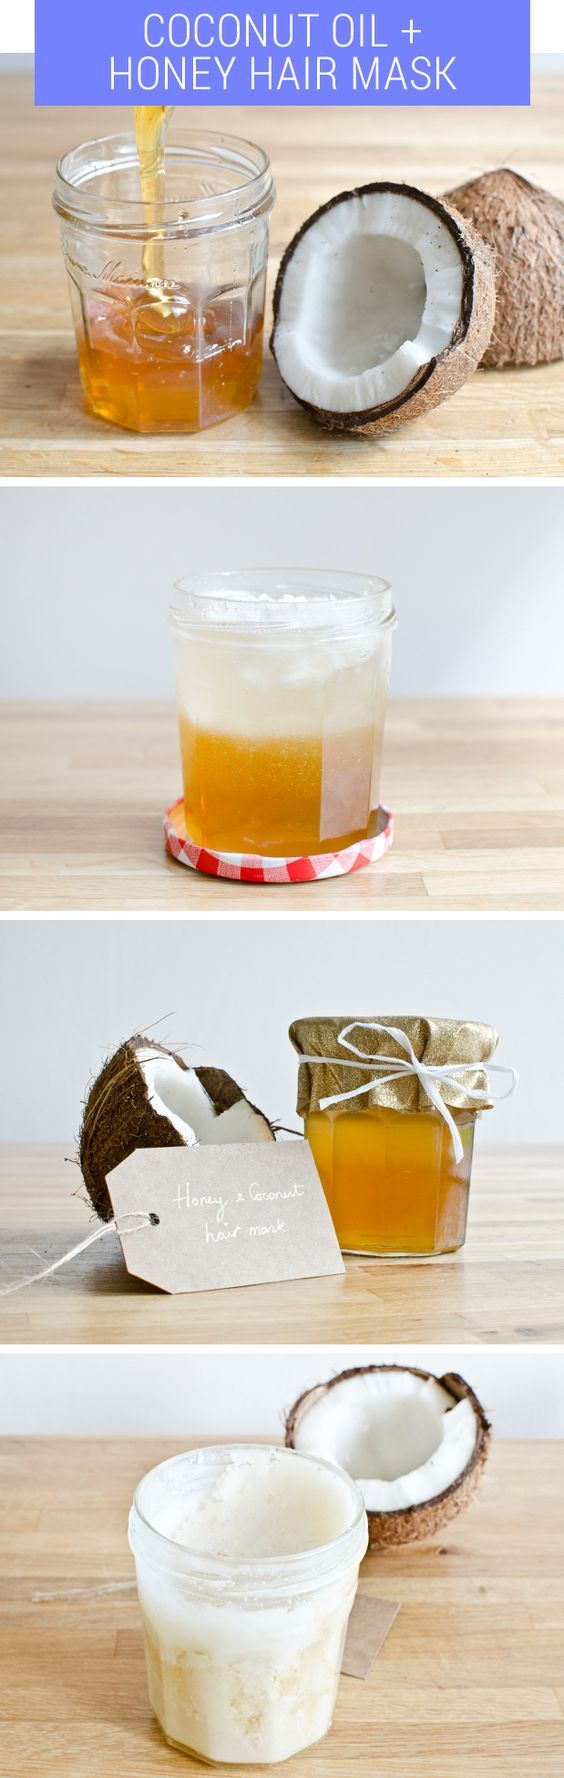 DIY Coconut and Honey Hair Mask | For more ideas, click the picture or visit www...